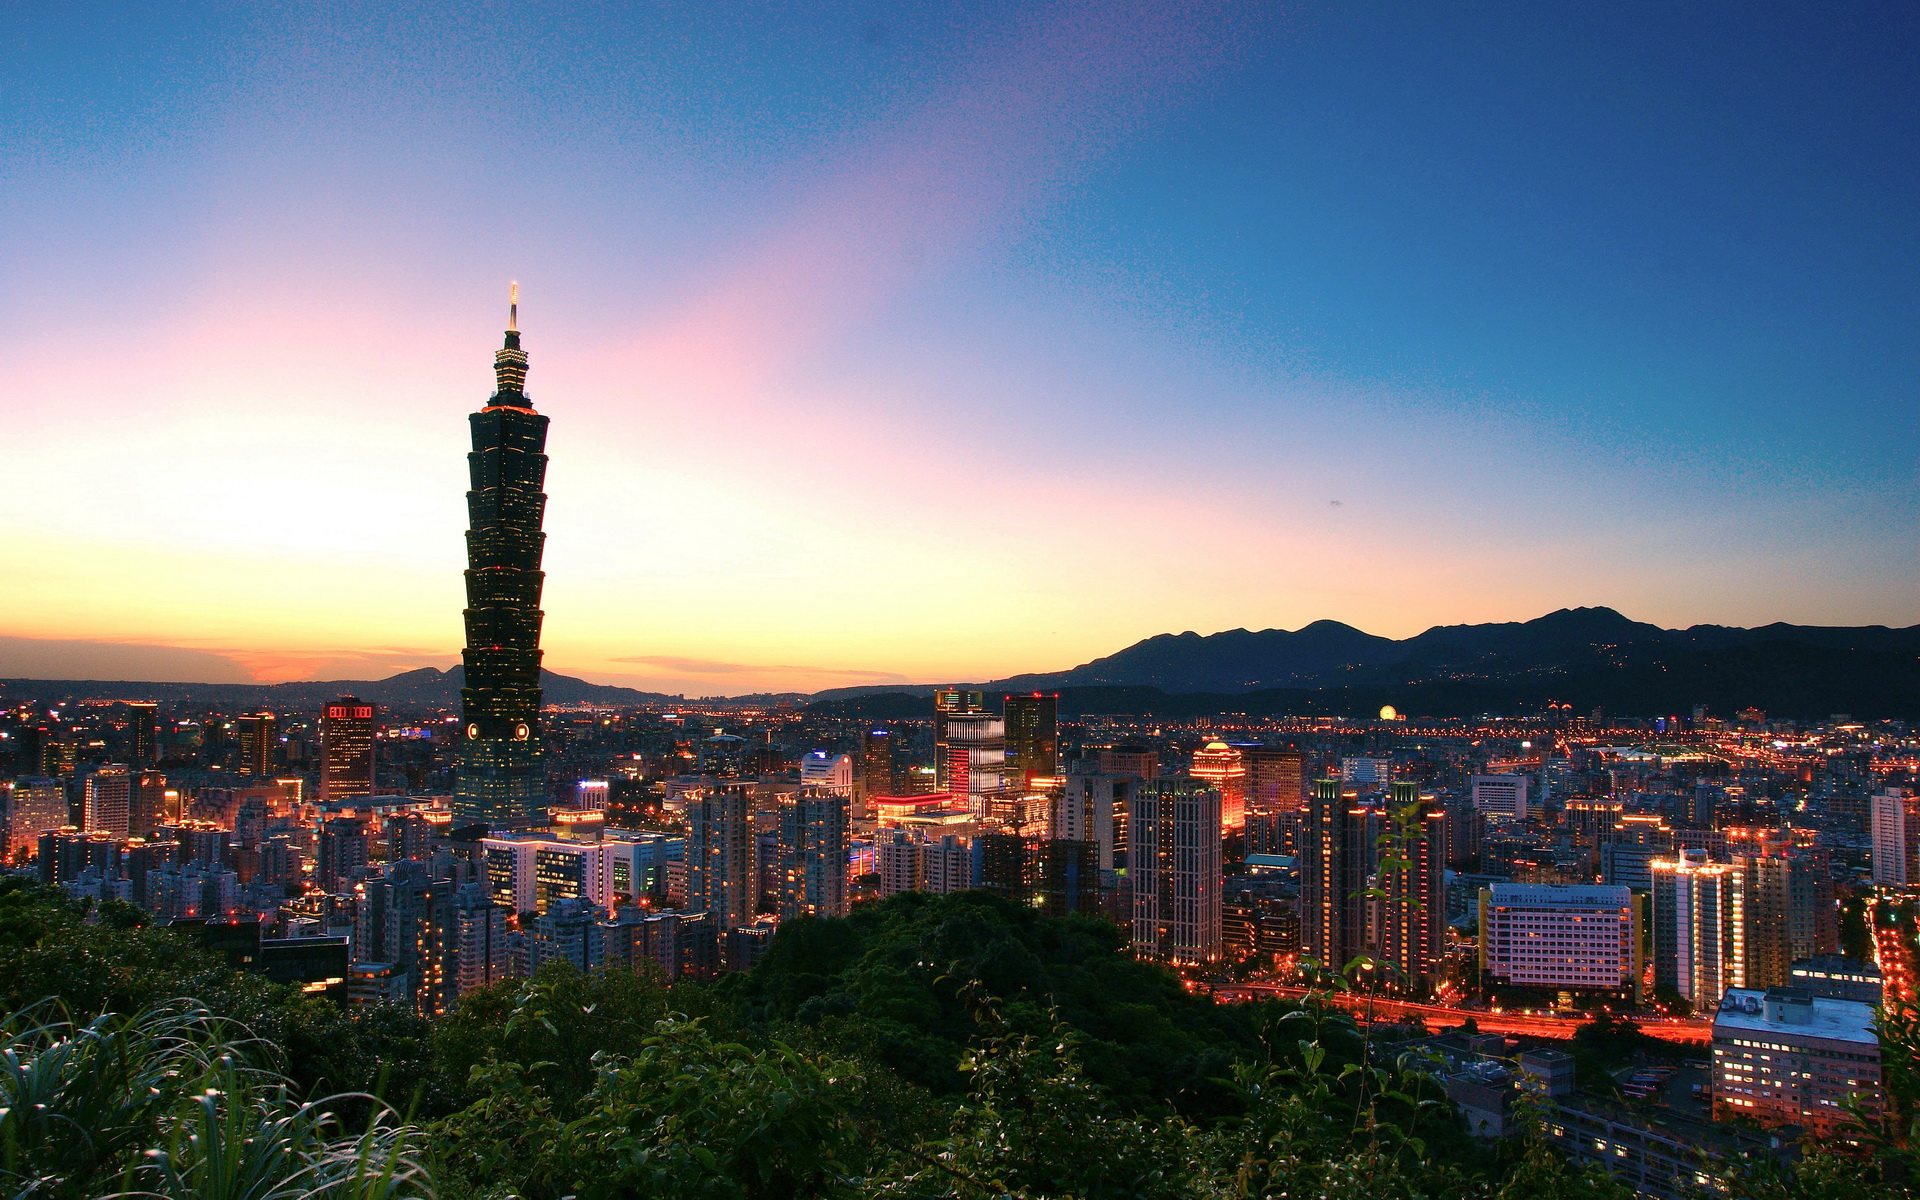 Taiwan Taipei 101 By No Desktop Wallpaper